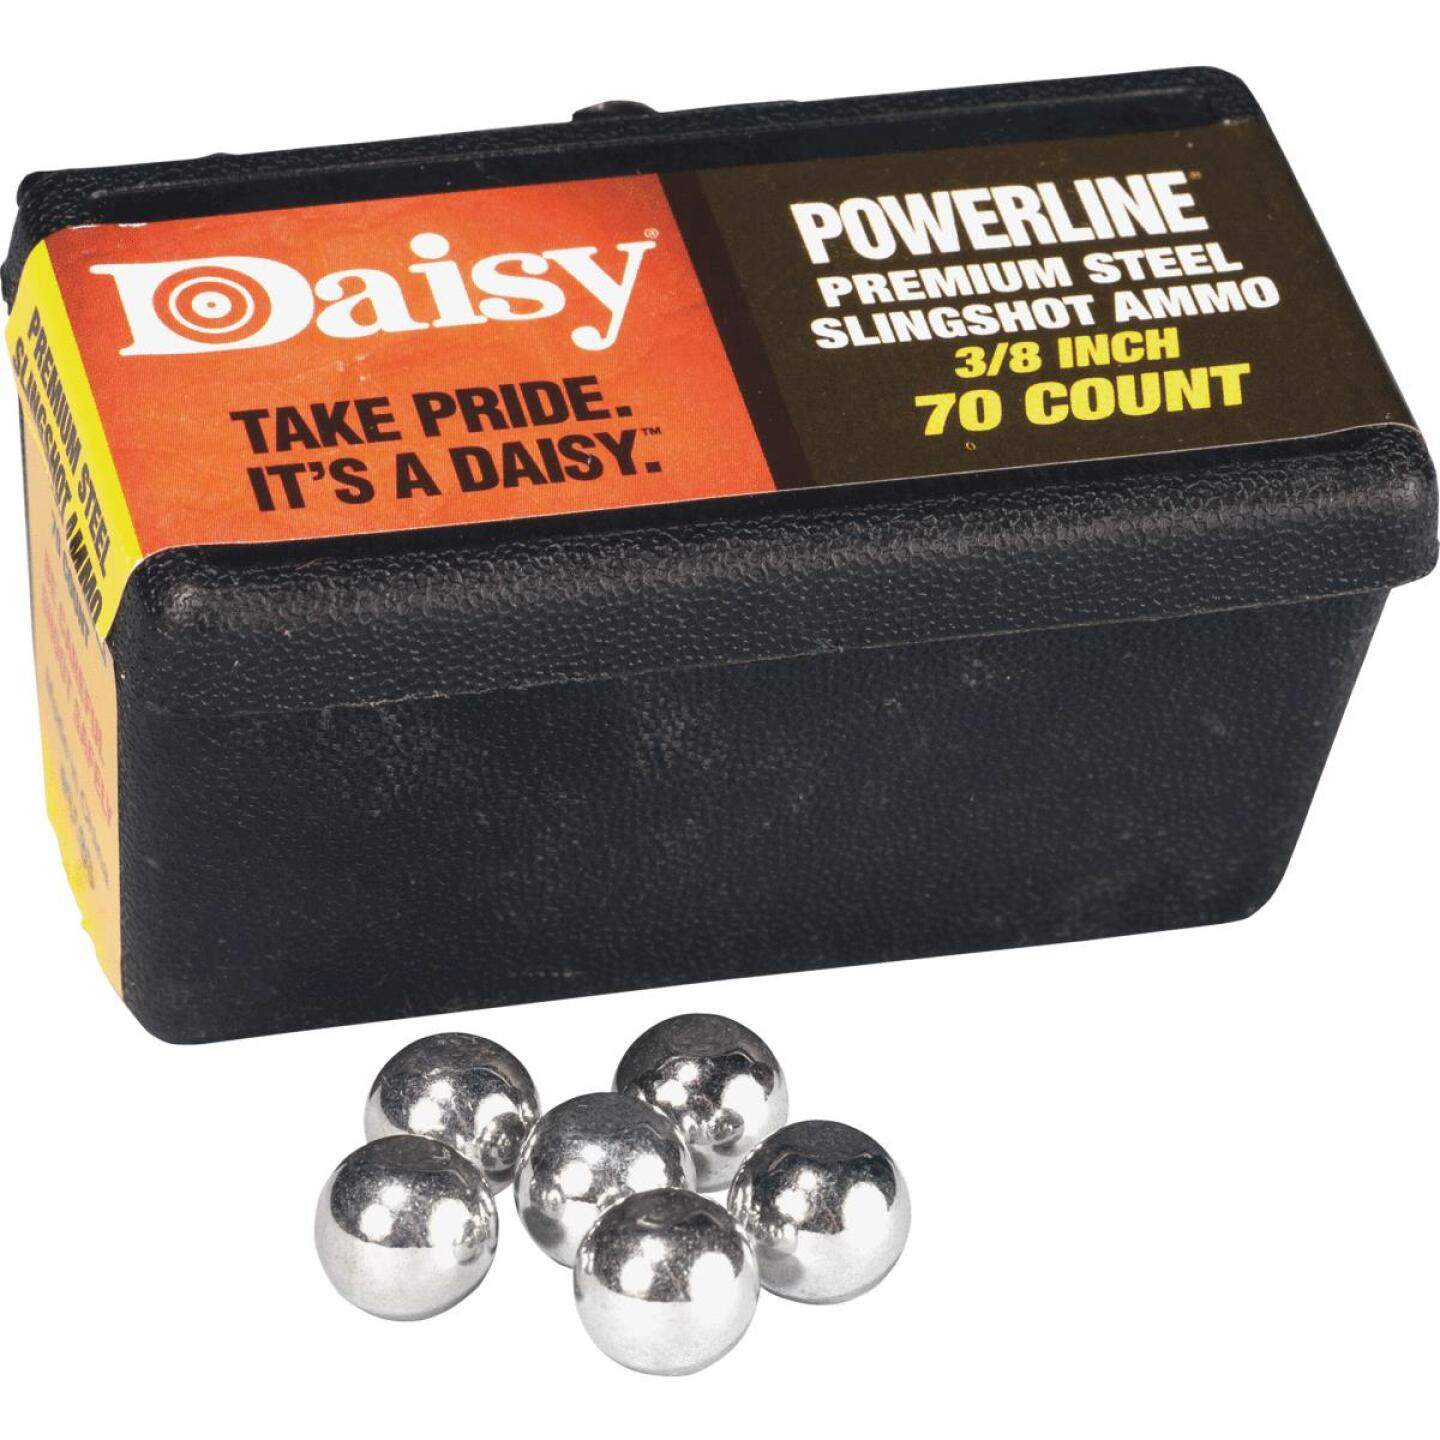 Daisy Steel 3/8 In. Slingshot Ball (70-Count) Image 1